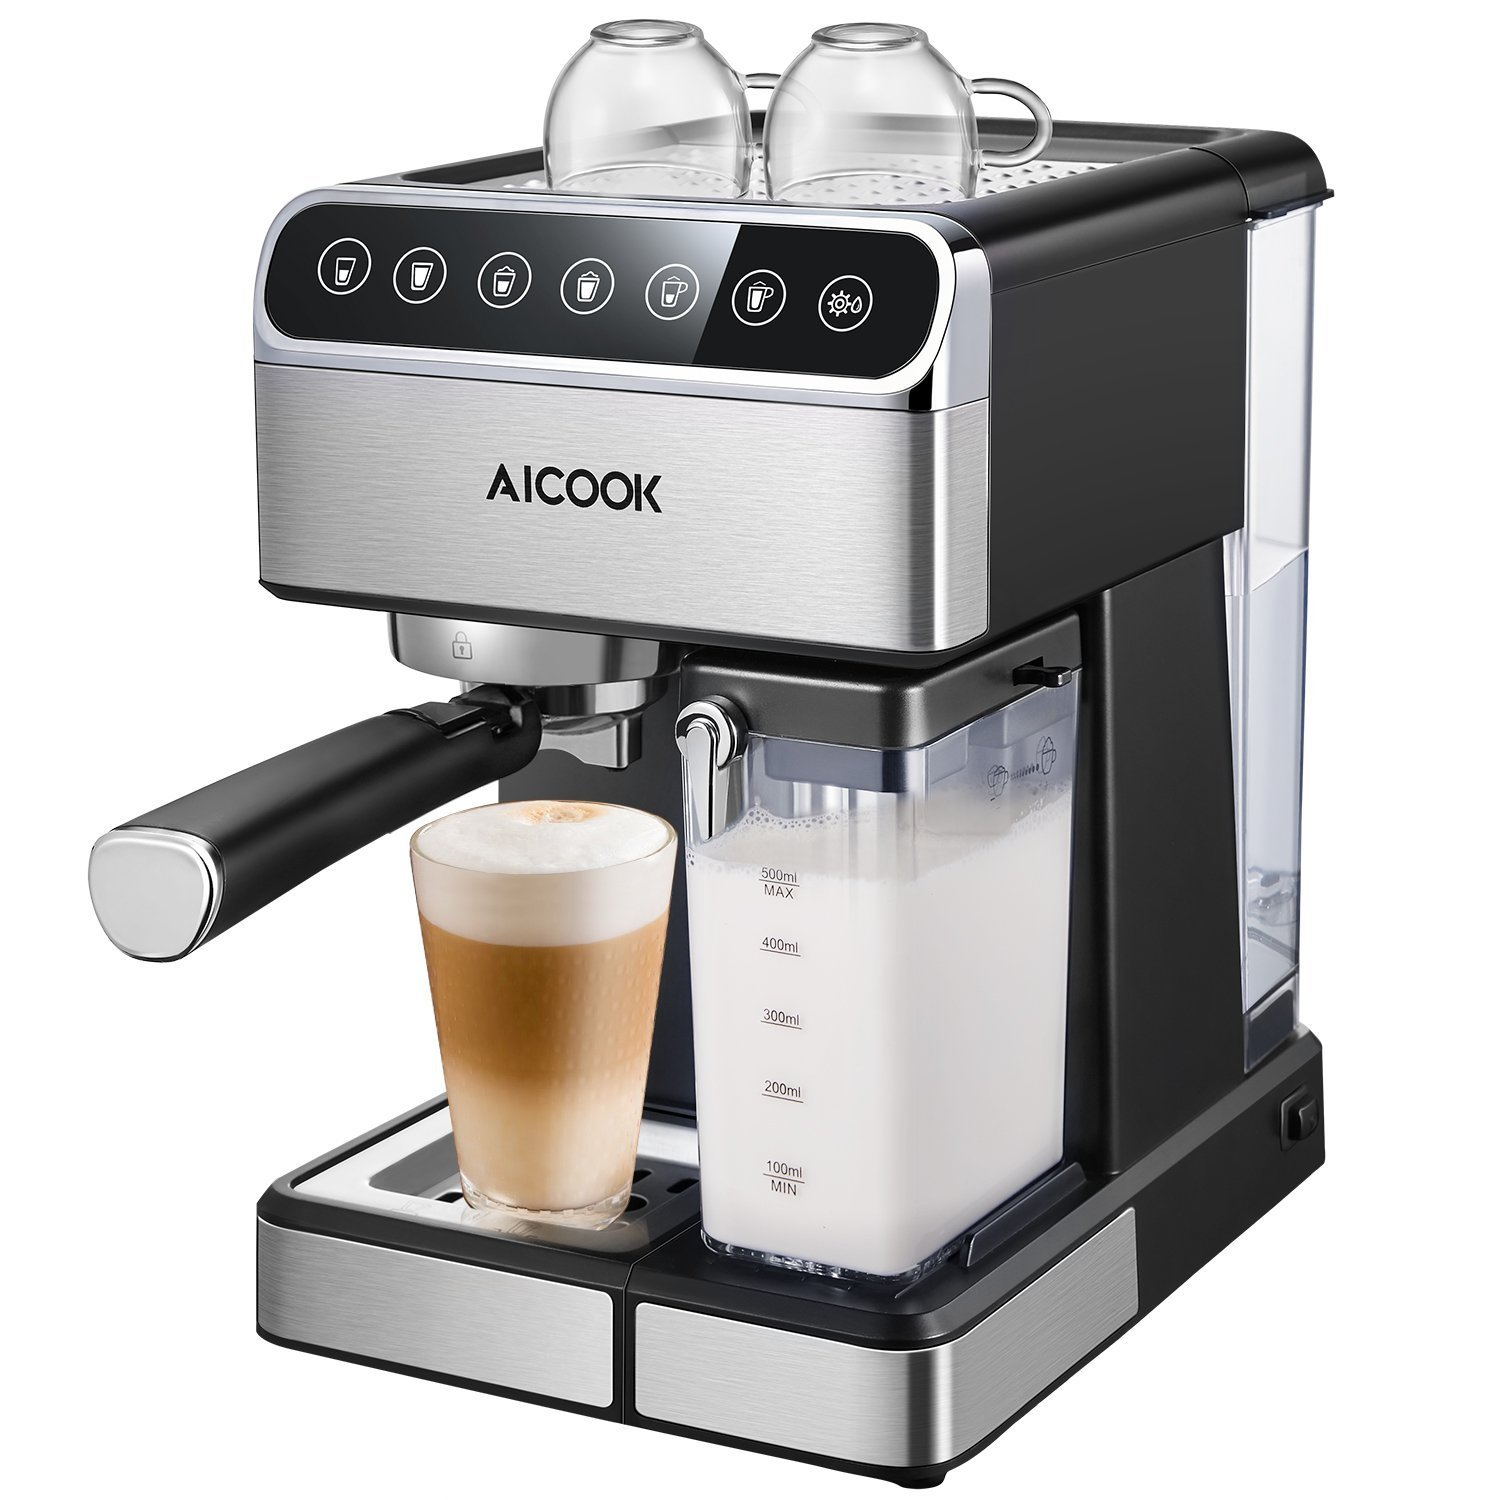 AICOOK Espresso Machine, Barista Espresso Coffee Maker with One Touch Digital Screen, 15 bar Pump and Automatic Milk Frother, Cappuccino maker, Latte maker by AICOOK